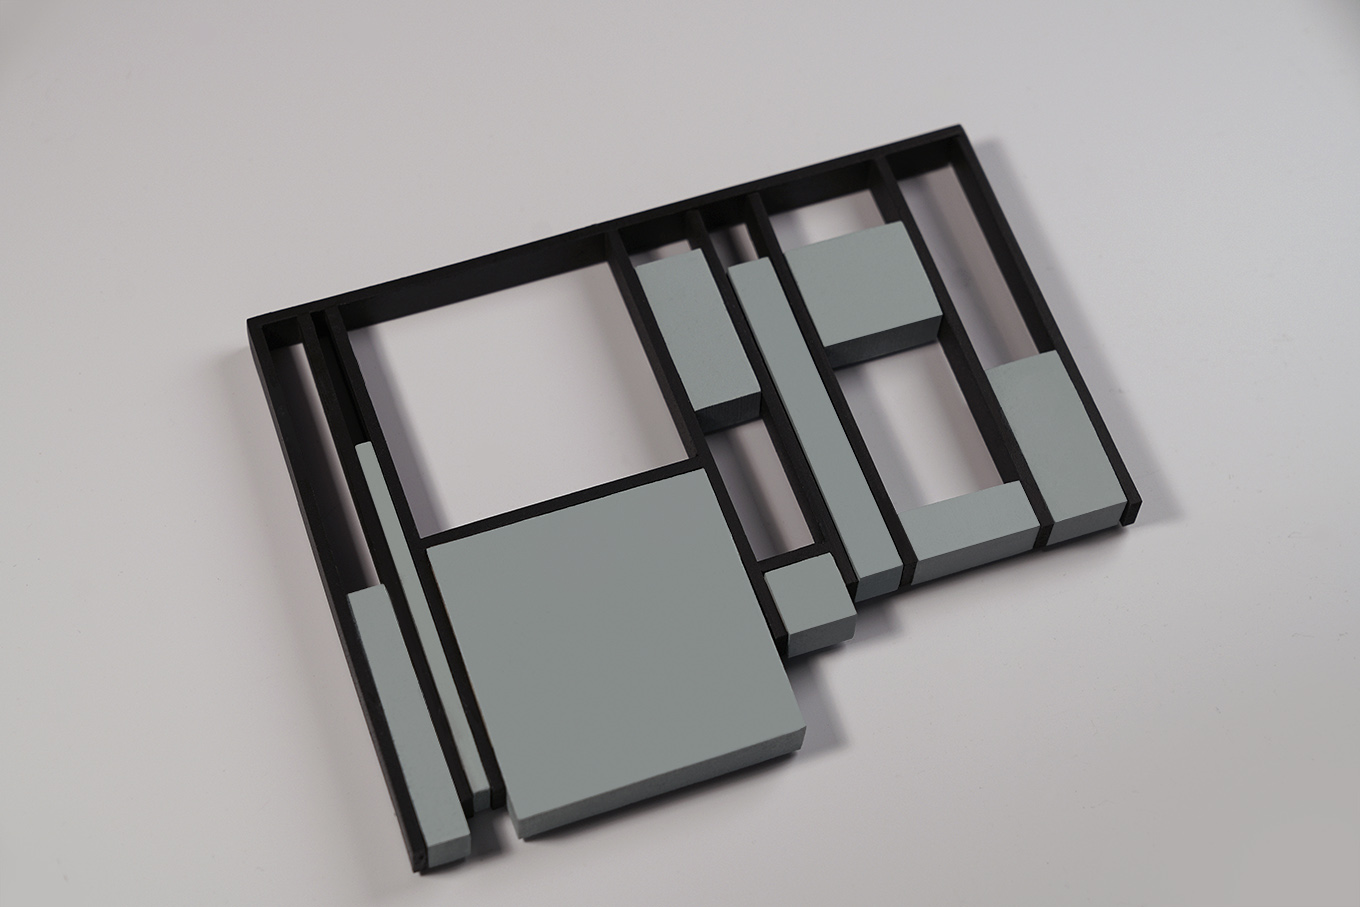 metal frame trivet with stone blocks